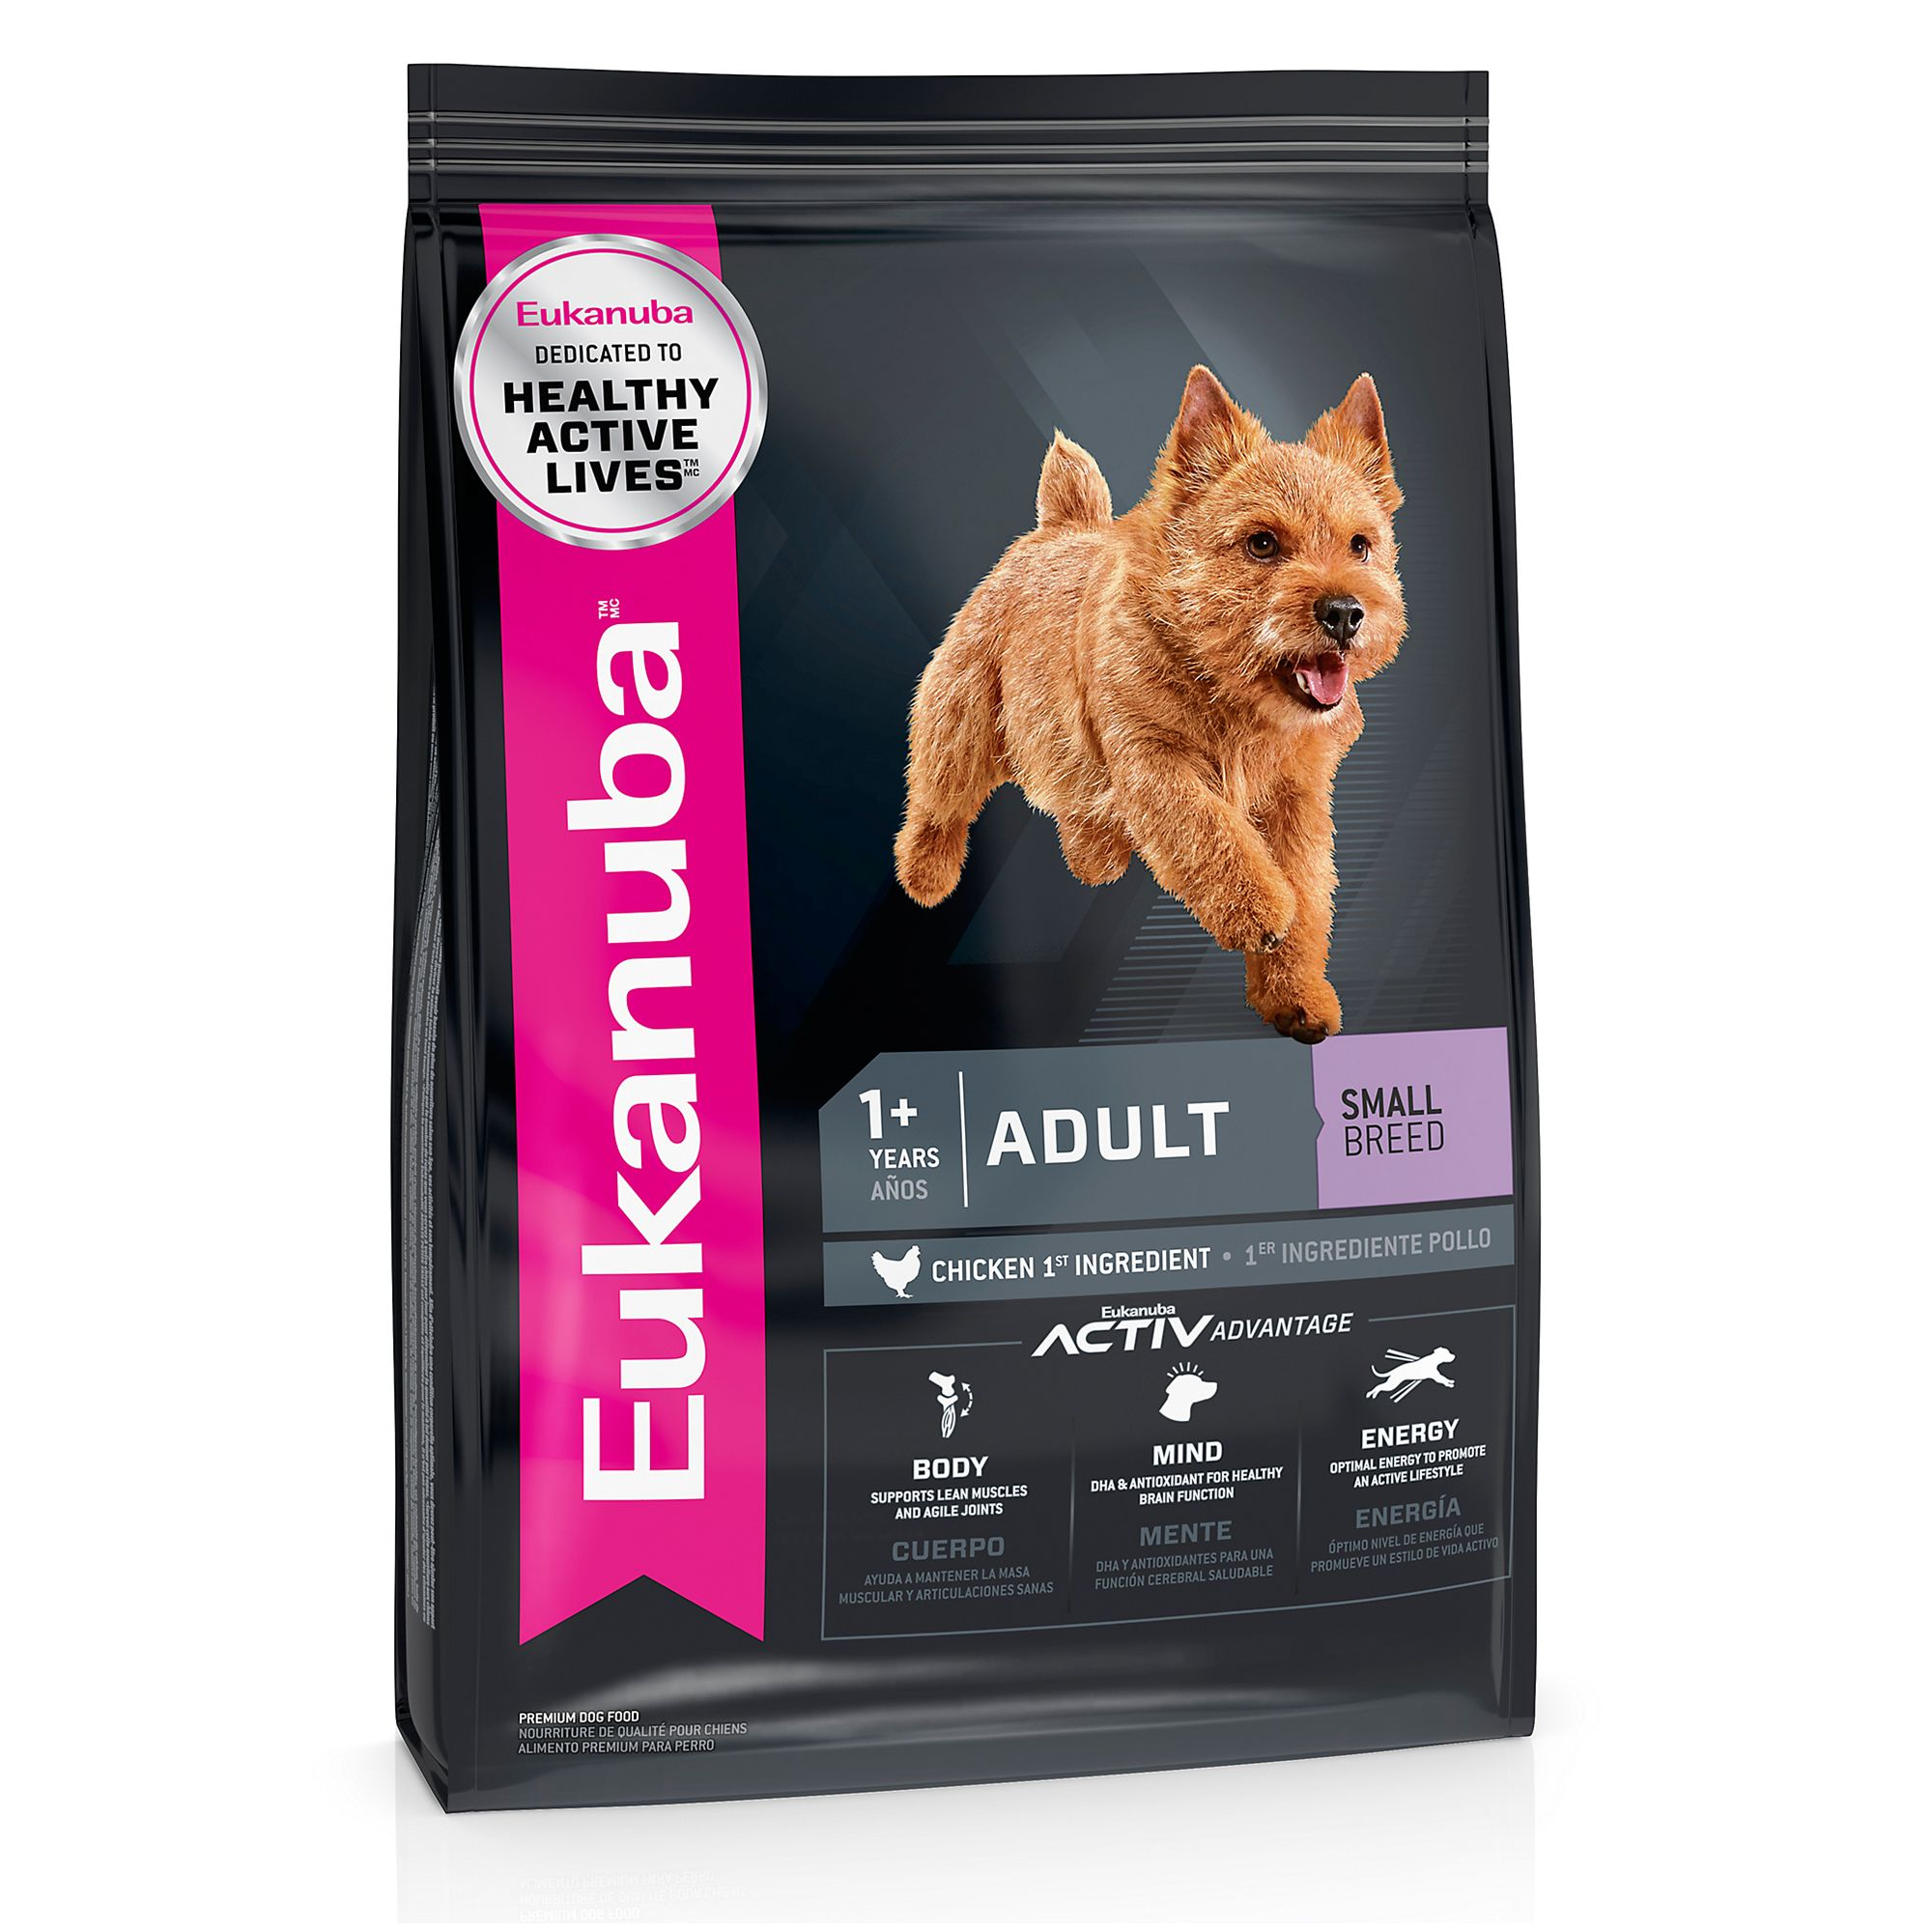 Eukanuba Adult Dog Food Chicken Small Breed Size 5 Lb